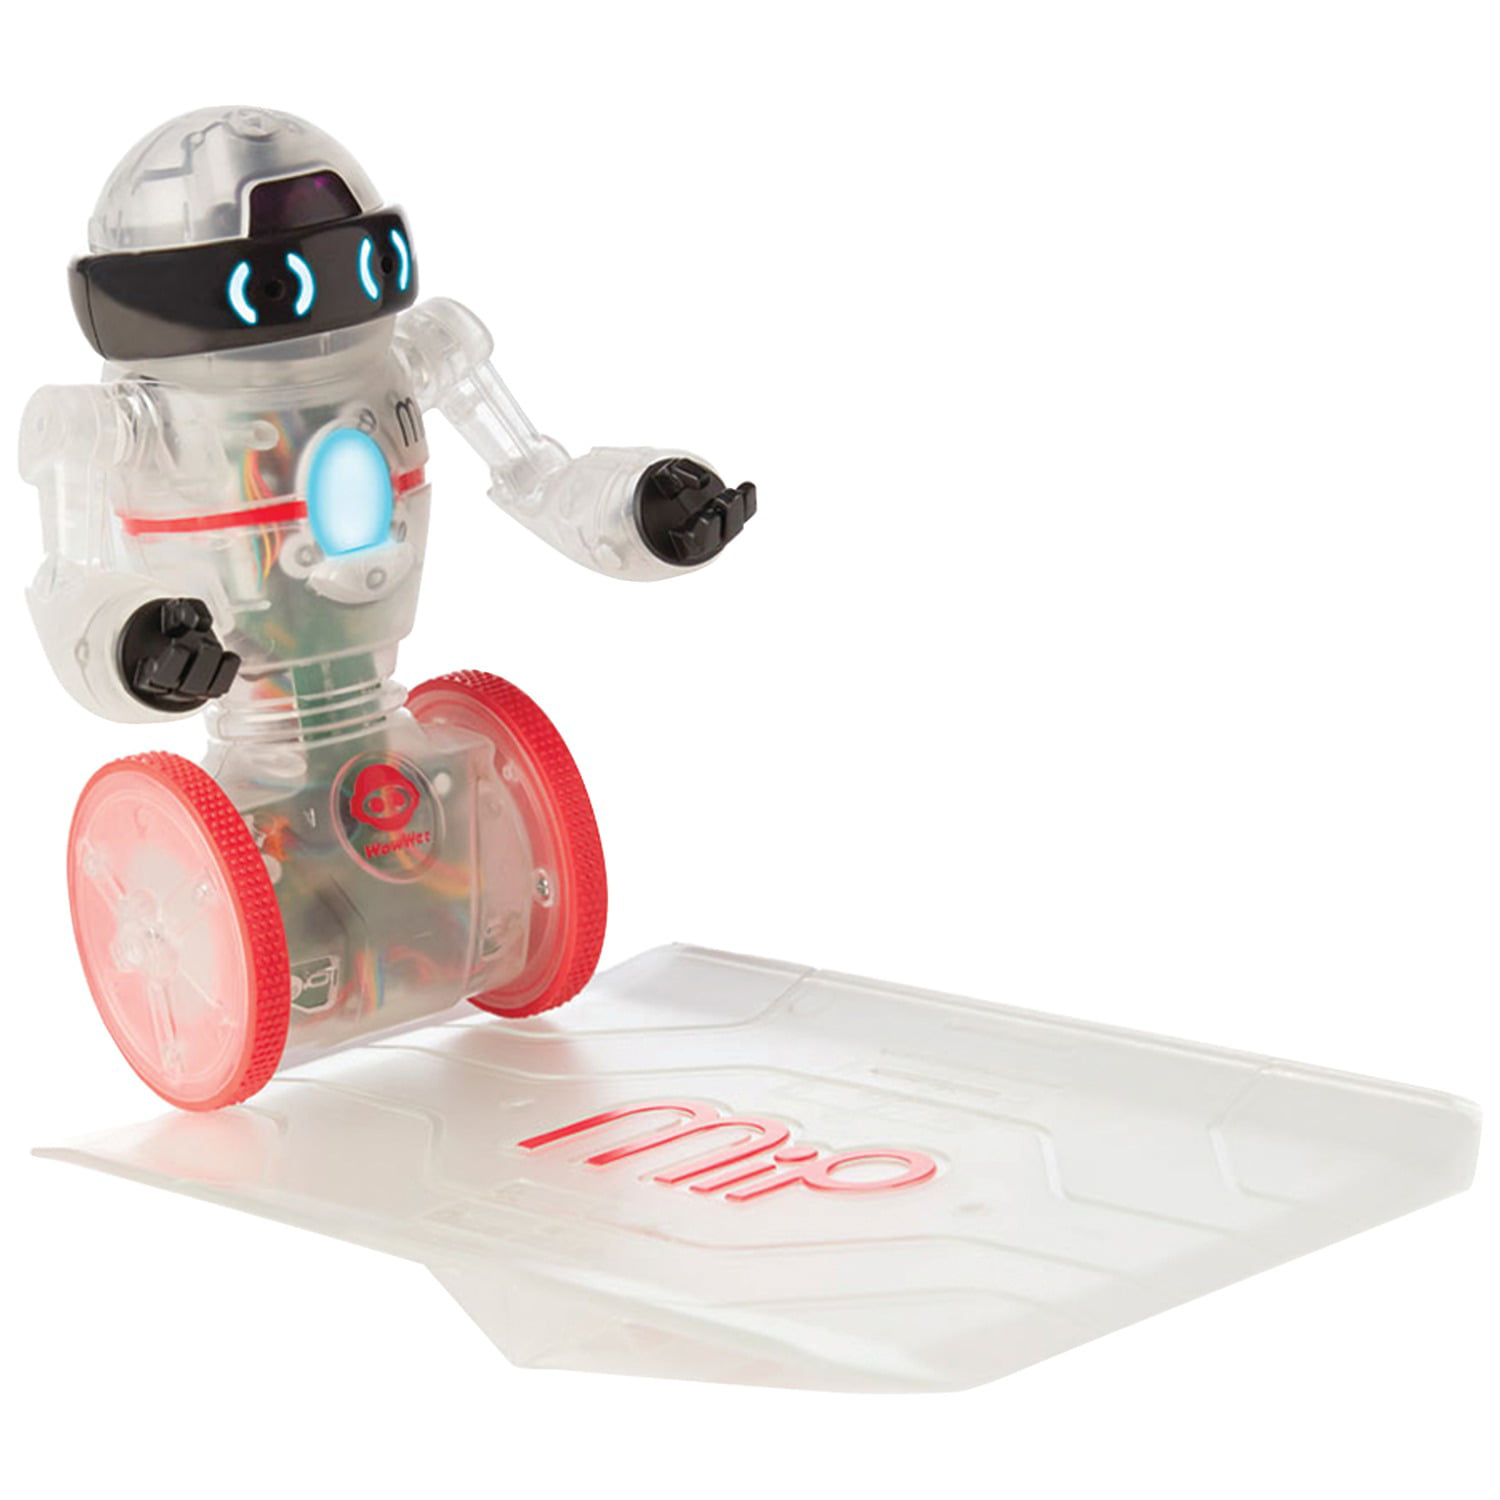 Coder MiP the STEM-based Toy Robot, Transparent by WowWee